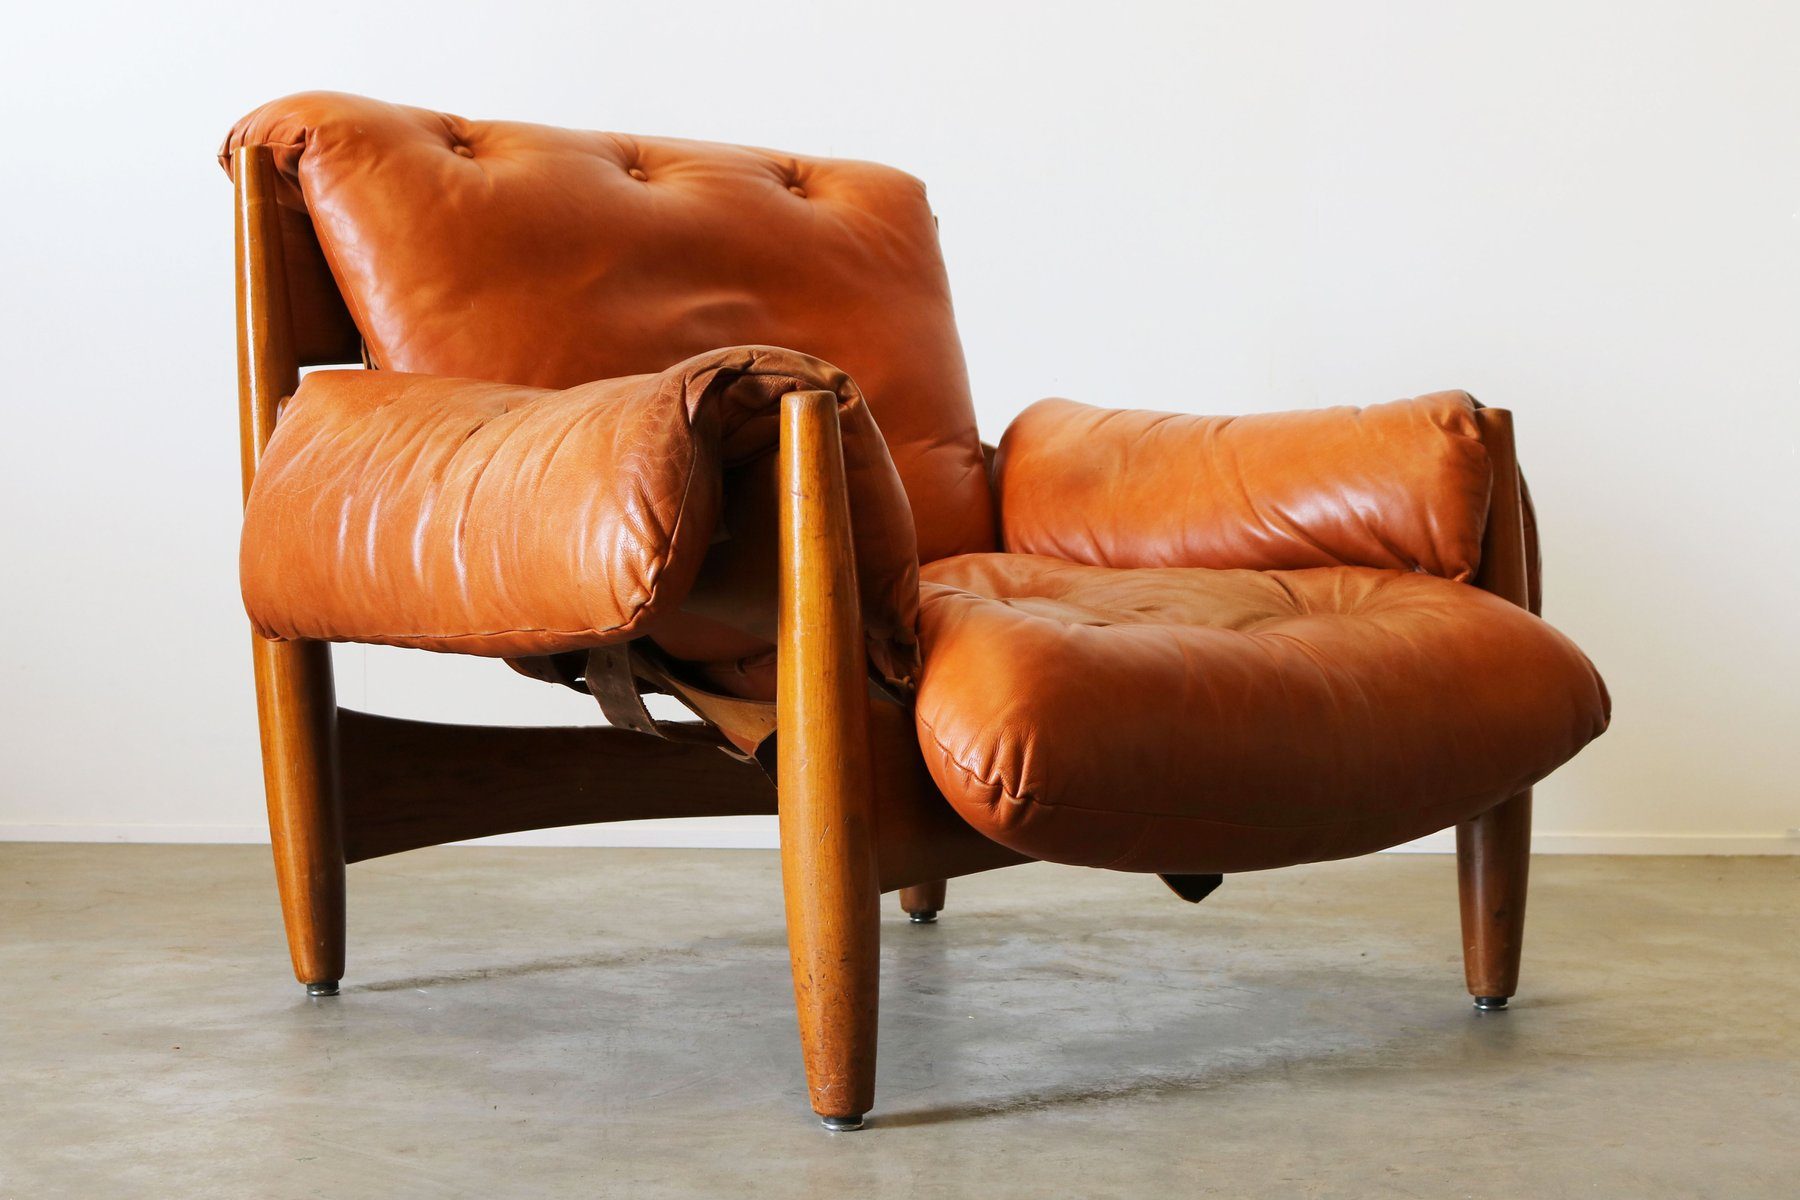 Original Sheriff Lounge Chair in Cognac Leather by Sergio Rodrigues for ISA Bergamo 1962 & Original Sheriff Lounge Chair in Cognac Leather by Sergio Rodrigues ...